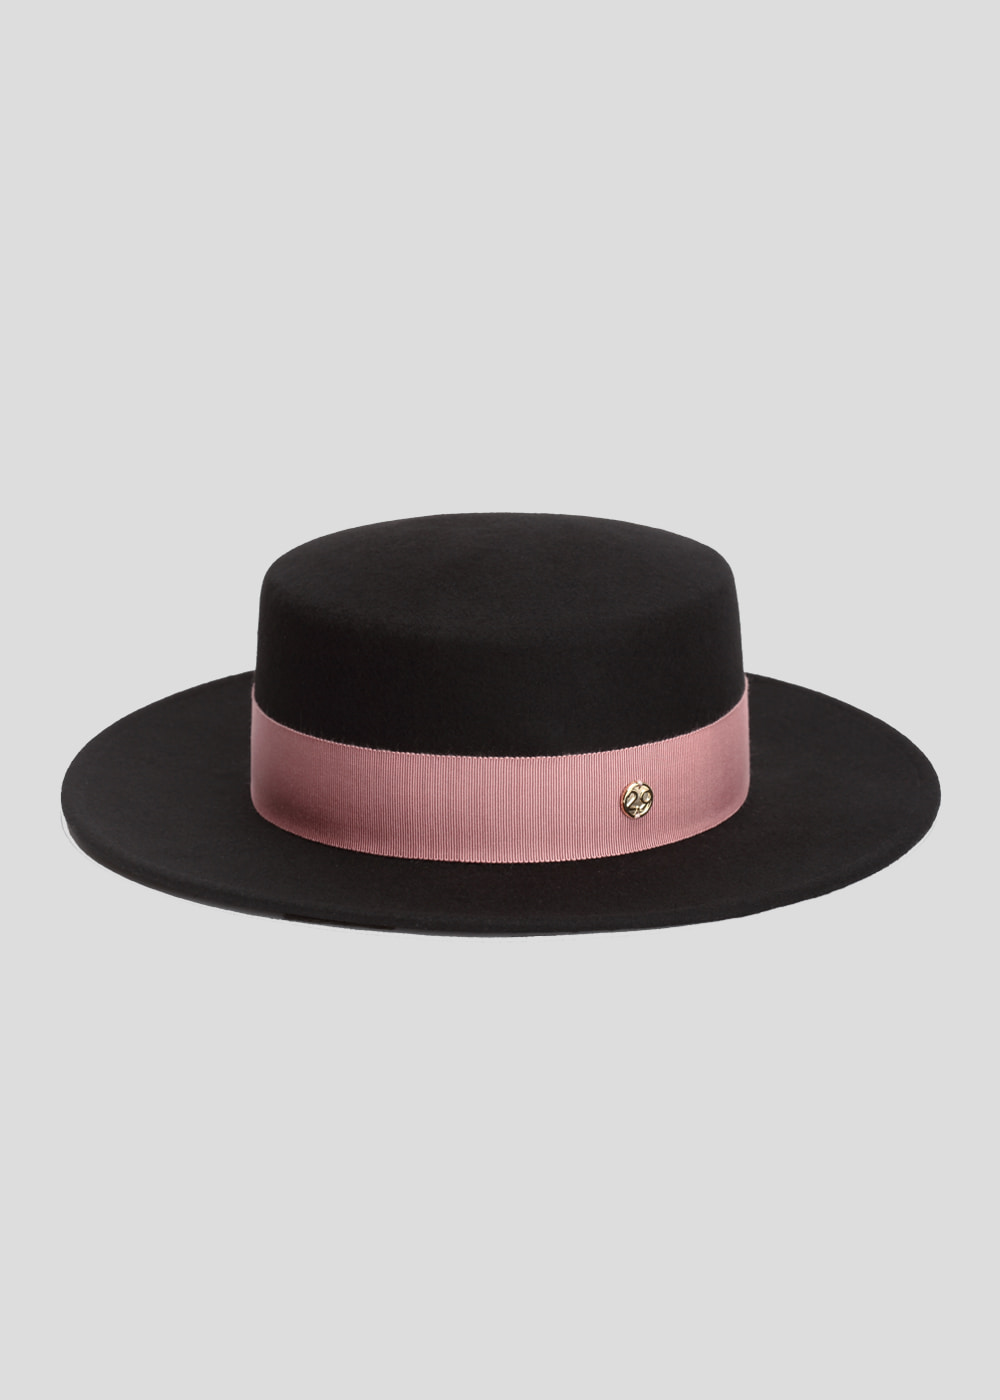 classic boater black/ Indian pink